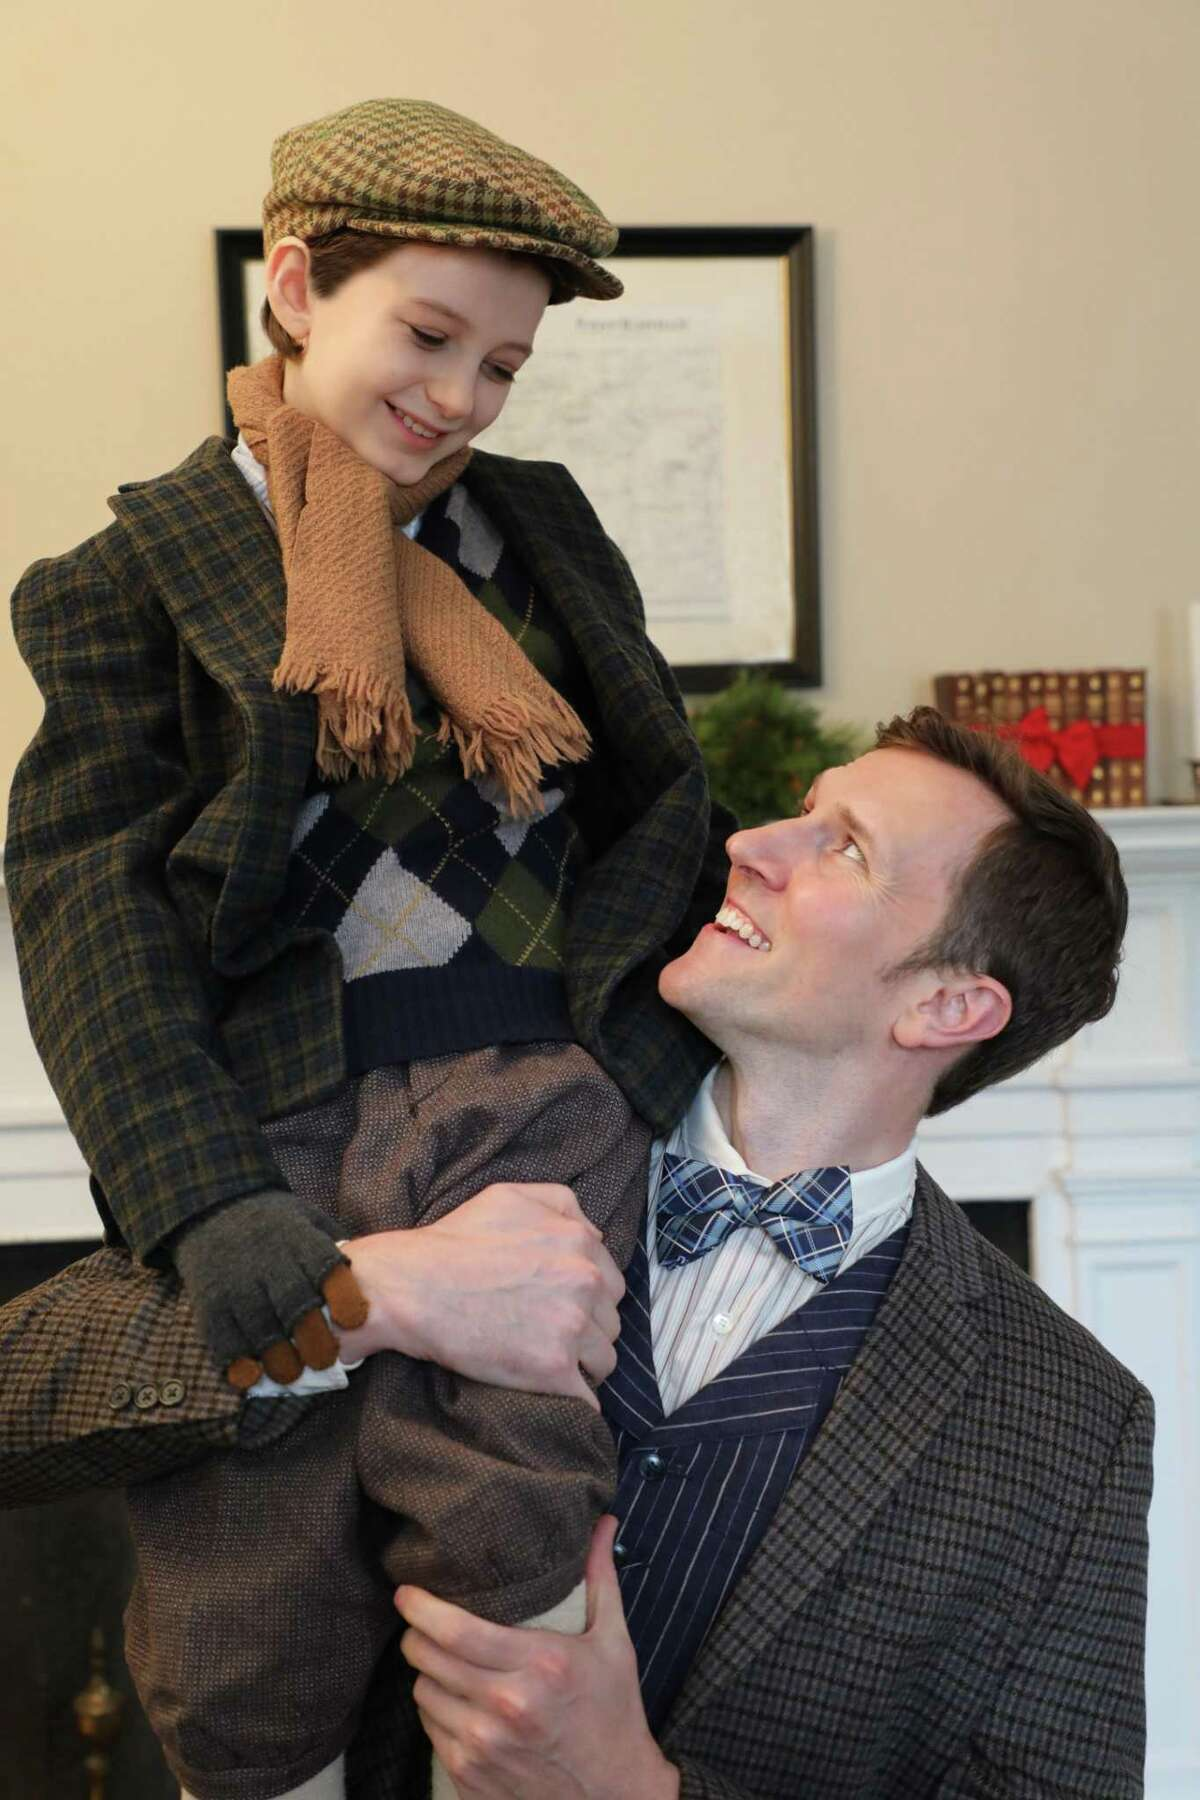 """Connecticut native Robert Berson (Tiny Tim), left, with Matt Gibson (Bob Cratchit), in a scene from """"A Connecticut Christmas Carol,"""" presented by Goodspeed Musicals, Nov. 17 through Dec. 24 at the Terris Theatre in Chester."""